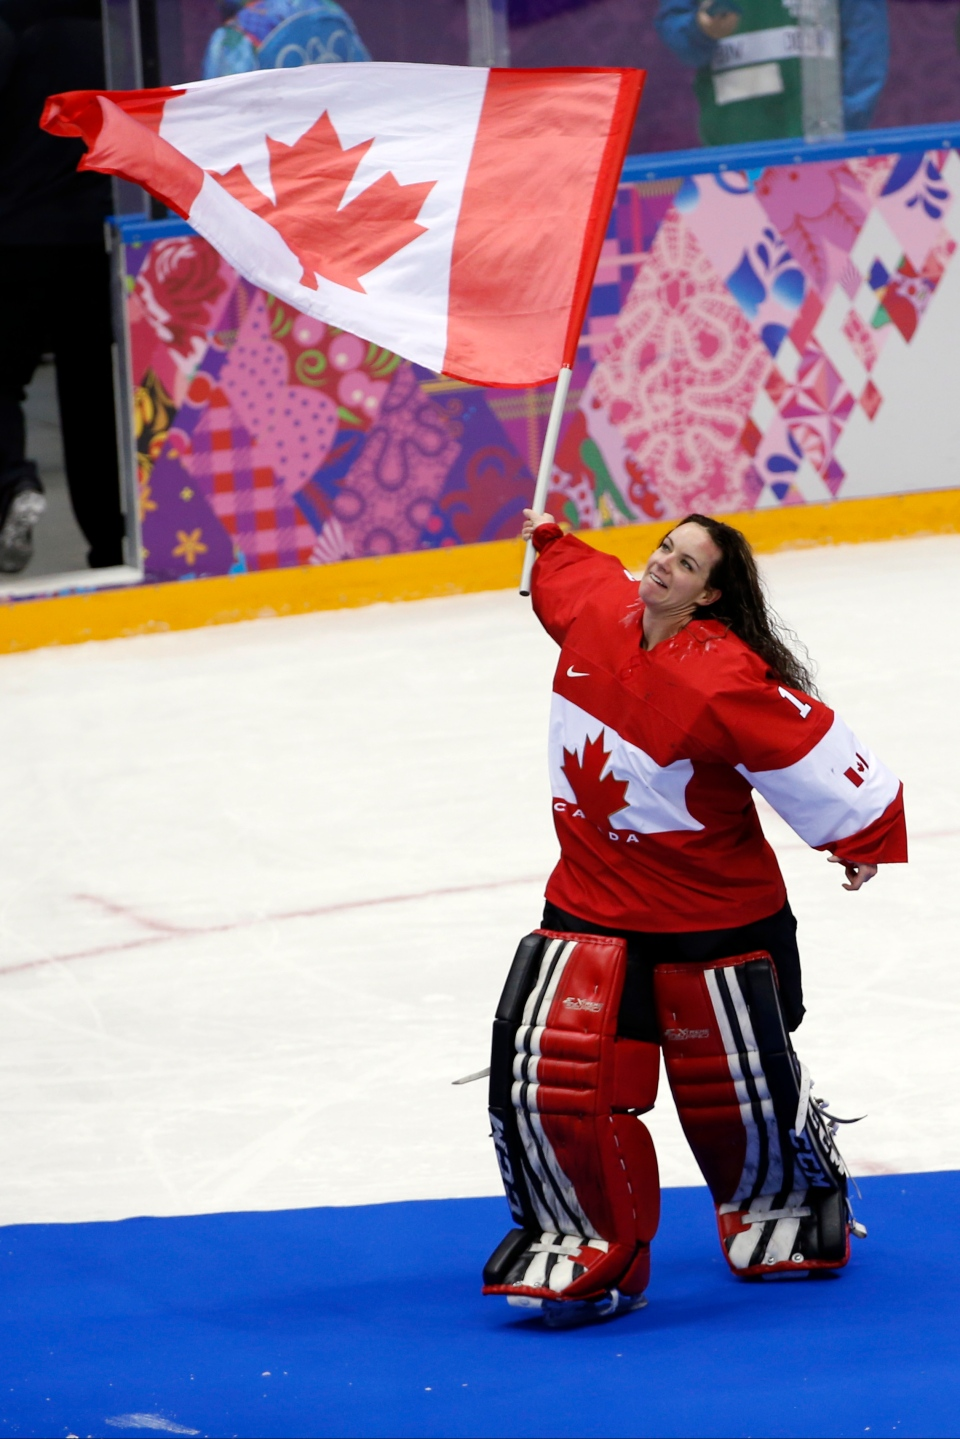 Goalkeeper Shannon Szabados of Canada (1) wave a flag after the women's gold medal ice hockey game against USA at the 2014 Winter Olympics in Sochi, Russia, Thursday, Feb. 20, 2014. (AP / Petr David Josek)